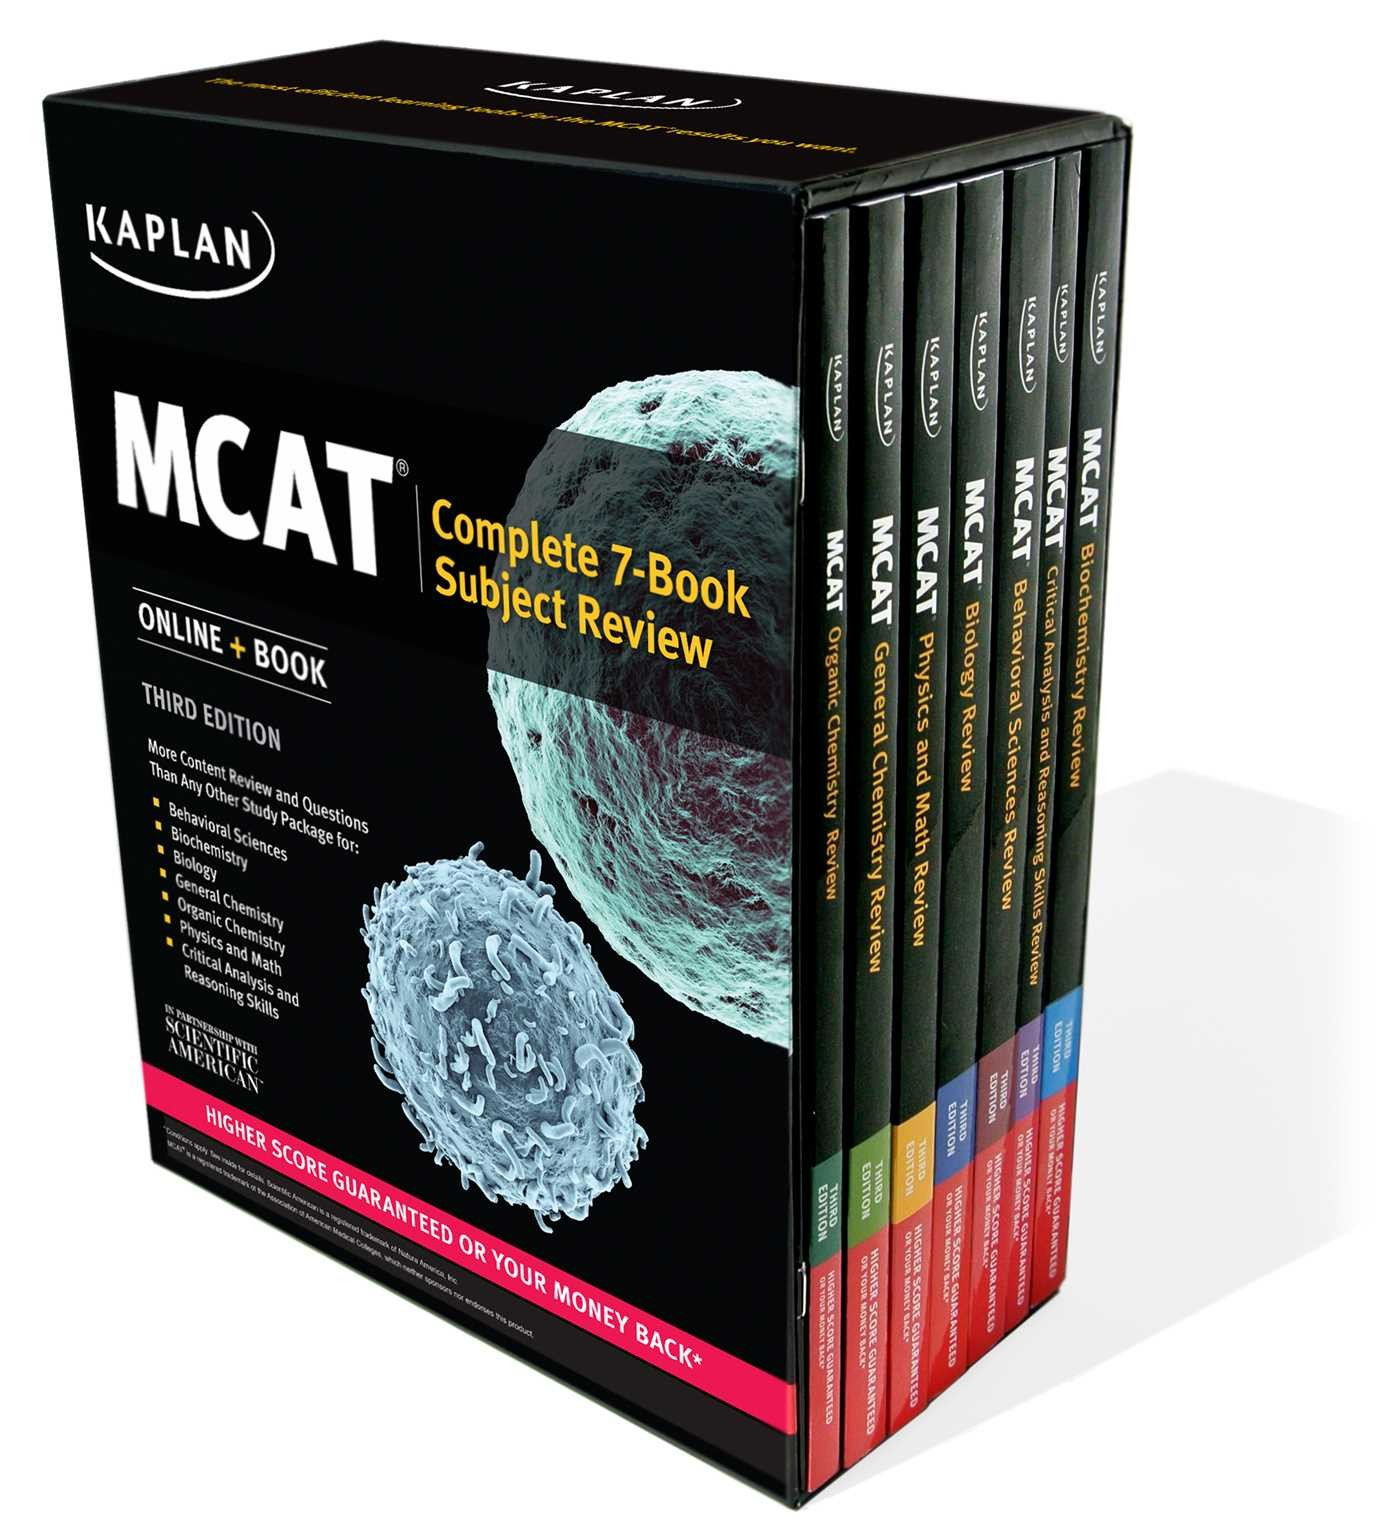 How much do MCAT prep books cost?